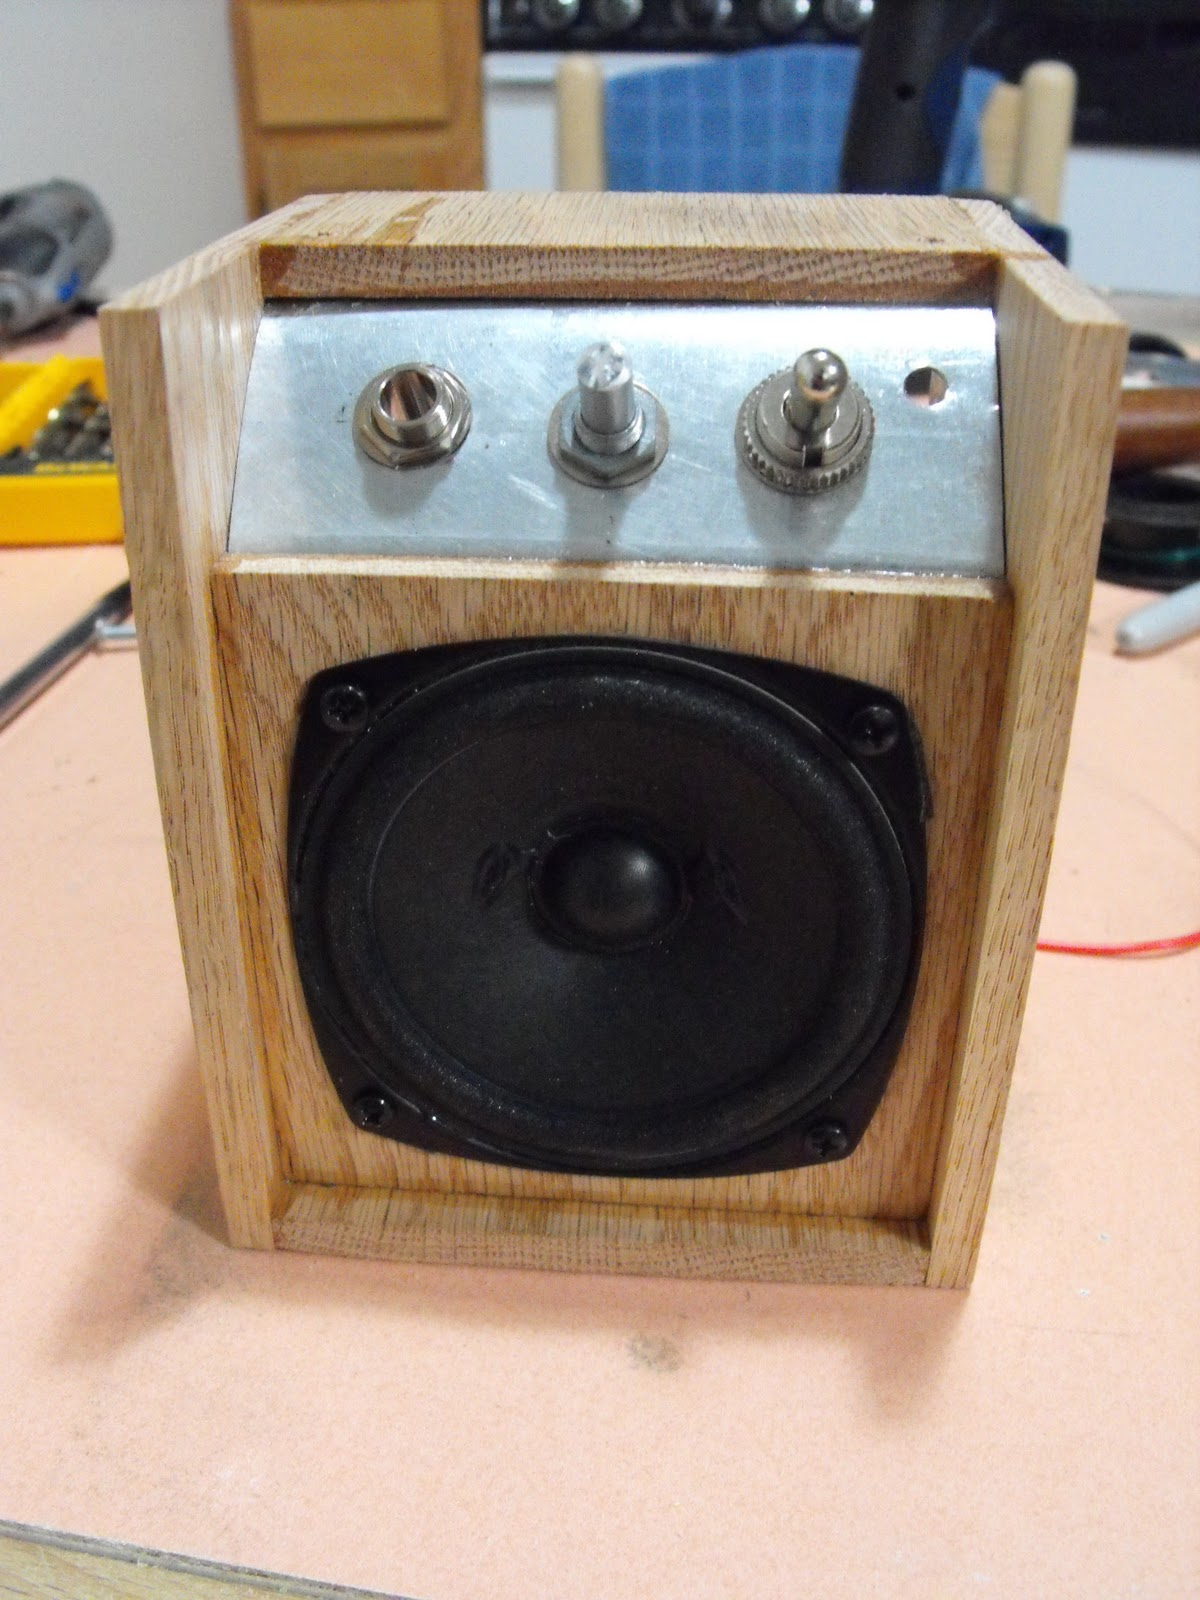 cigar box guitar mini amp lm386 assembled box 4 speaker